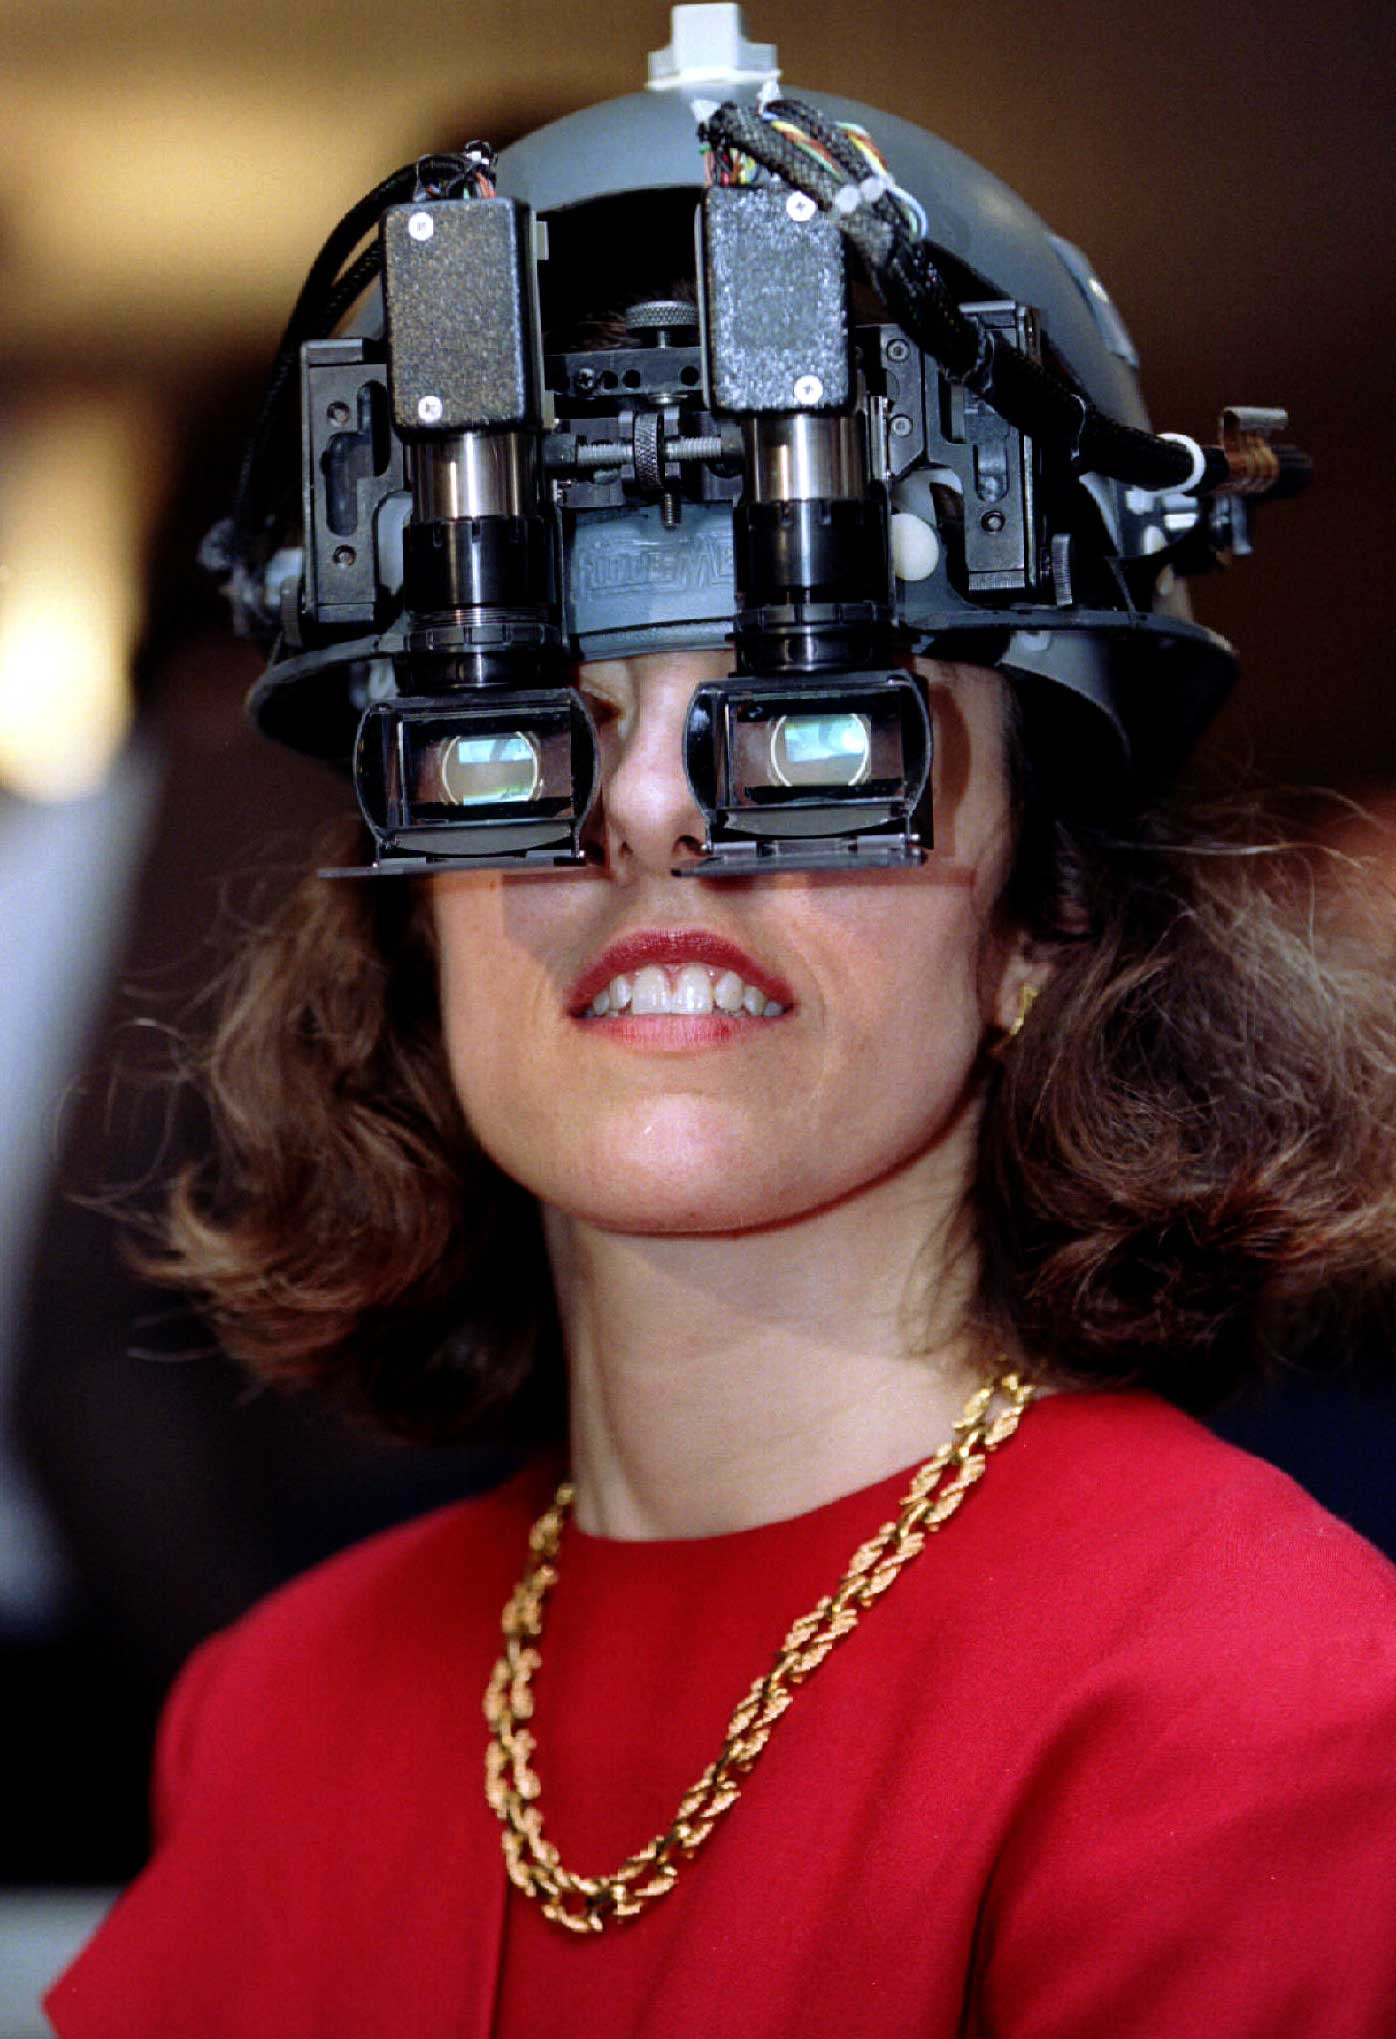 1995                                                              A visitor checking out a virtual reality head-set at the G7 Information Society Showcase taking place at the European Parliament. The head-set was linked to a camera elsewhere in the building which the visitor could control through head movements.